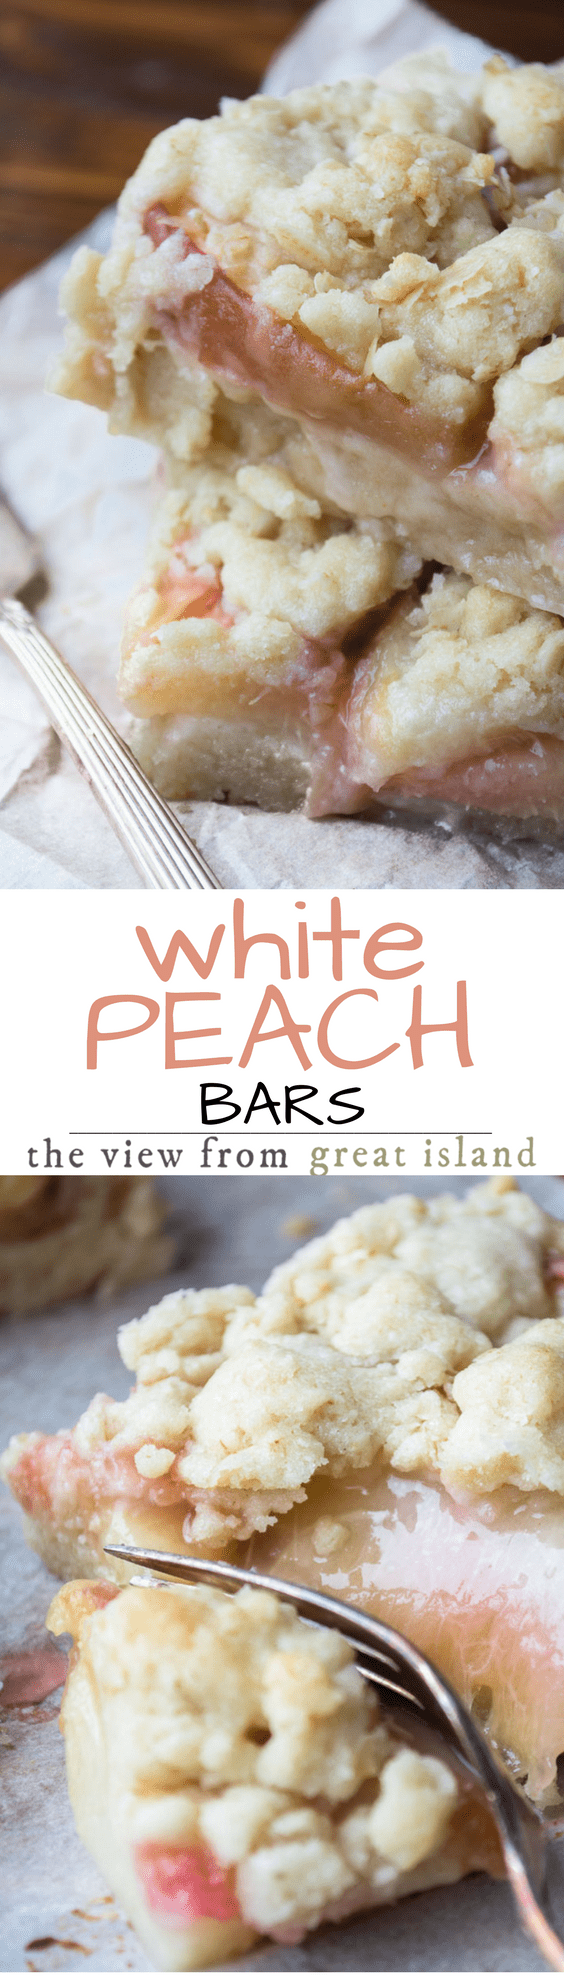 White Peach Bars ~ these are thing things summer dreams are made of, with delicate and juicy white peaches baked up in a butter golden shortbread crumble crust !